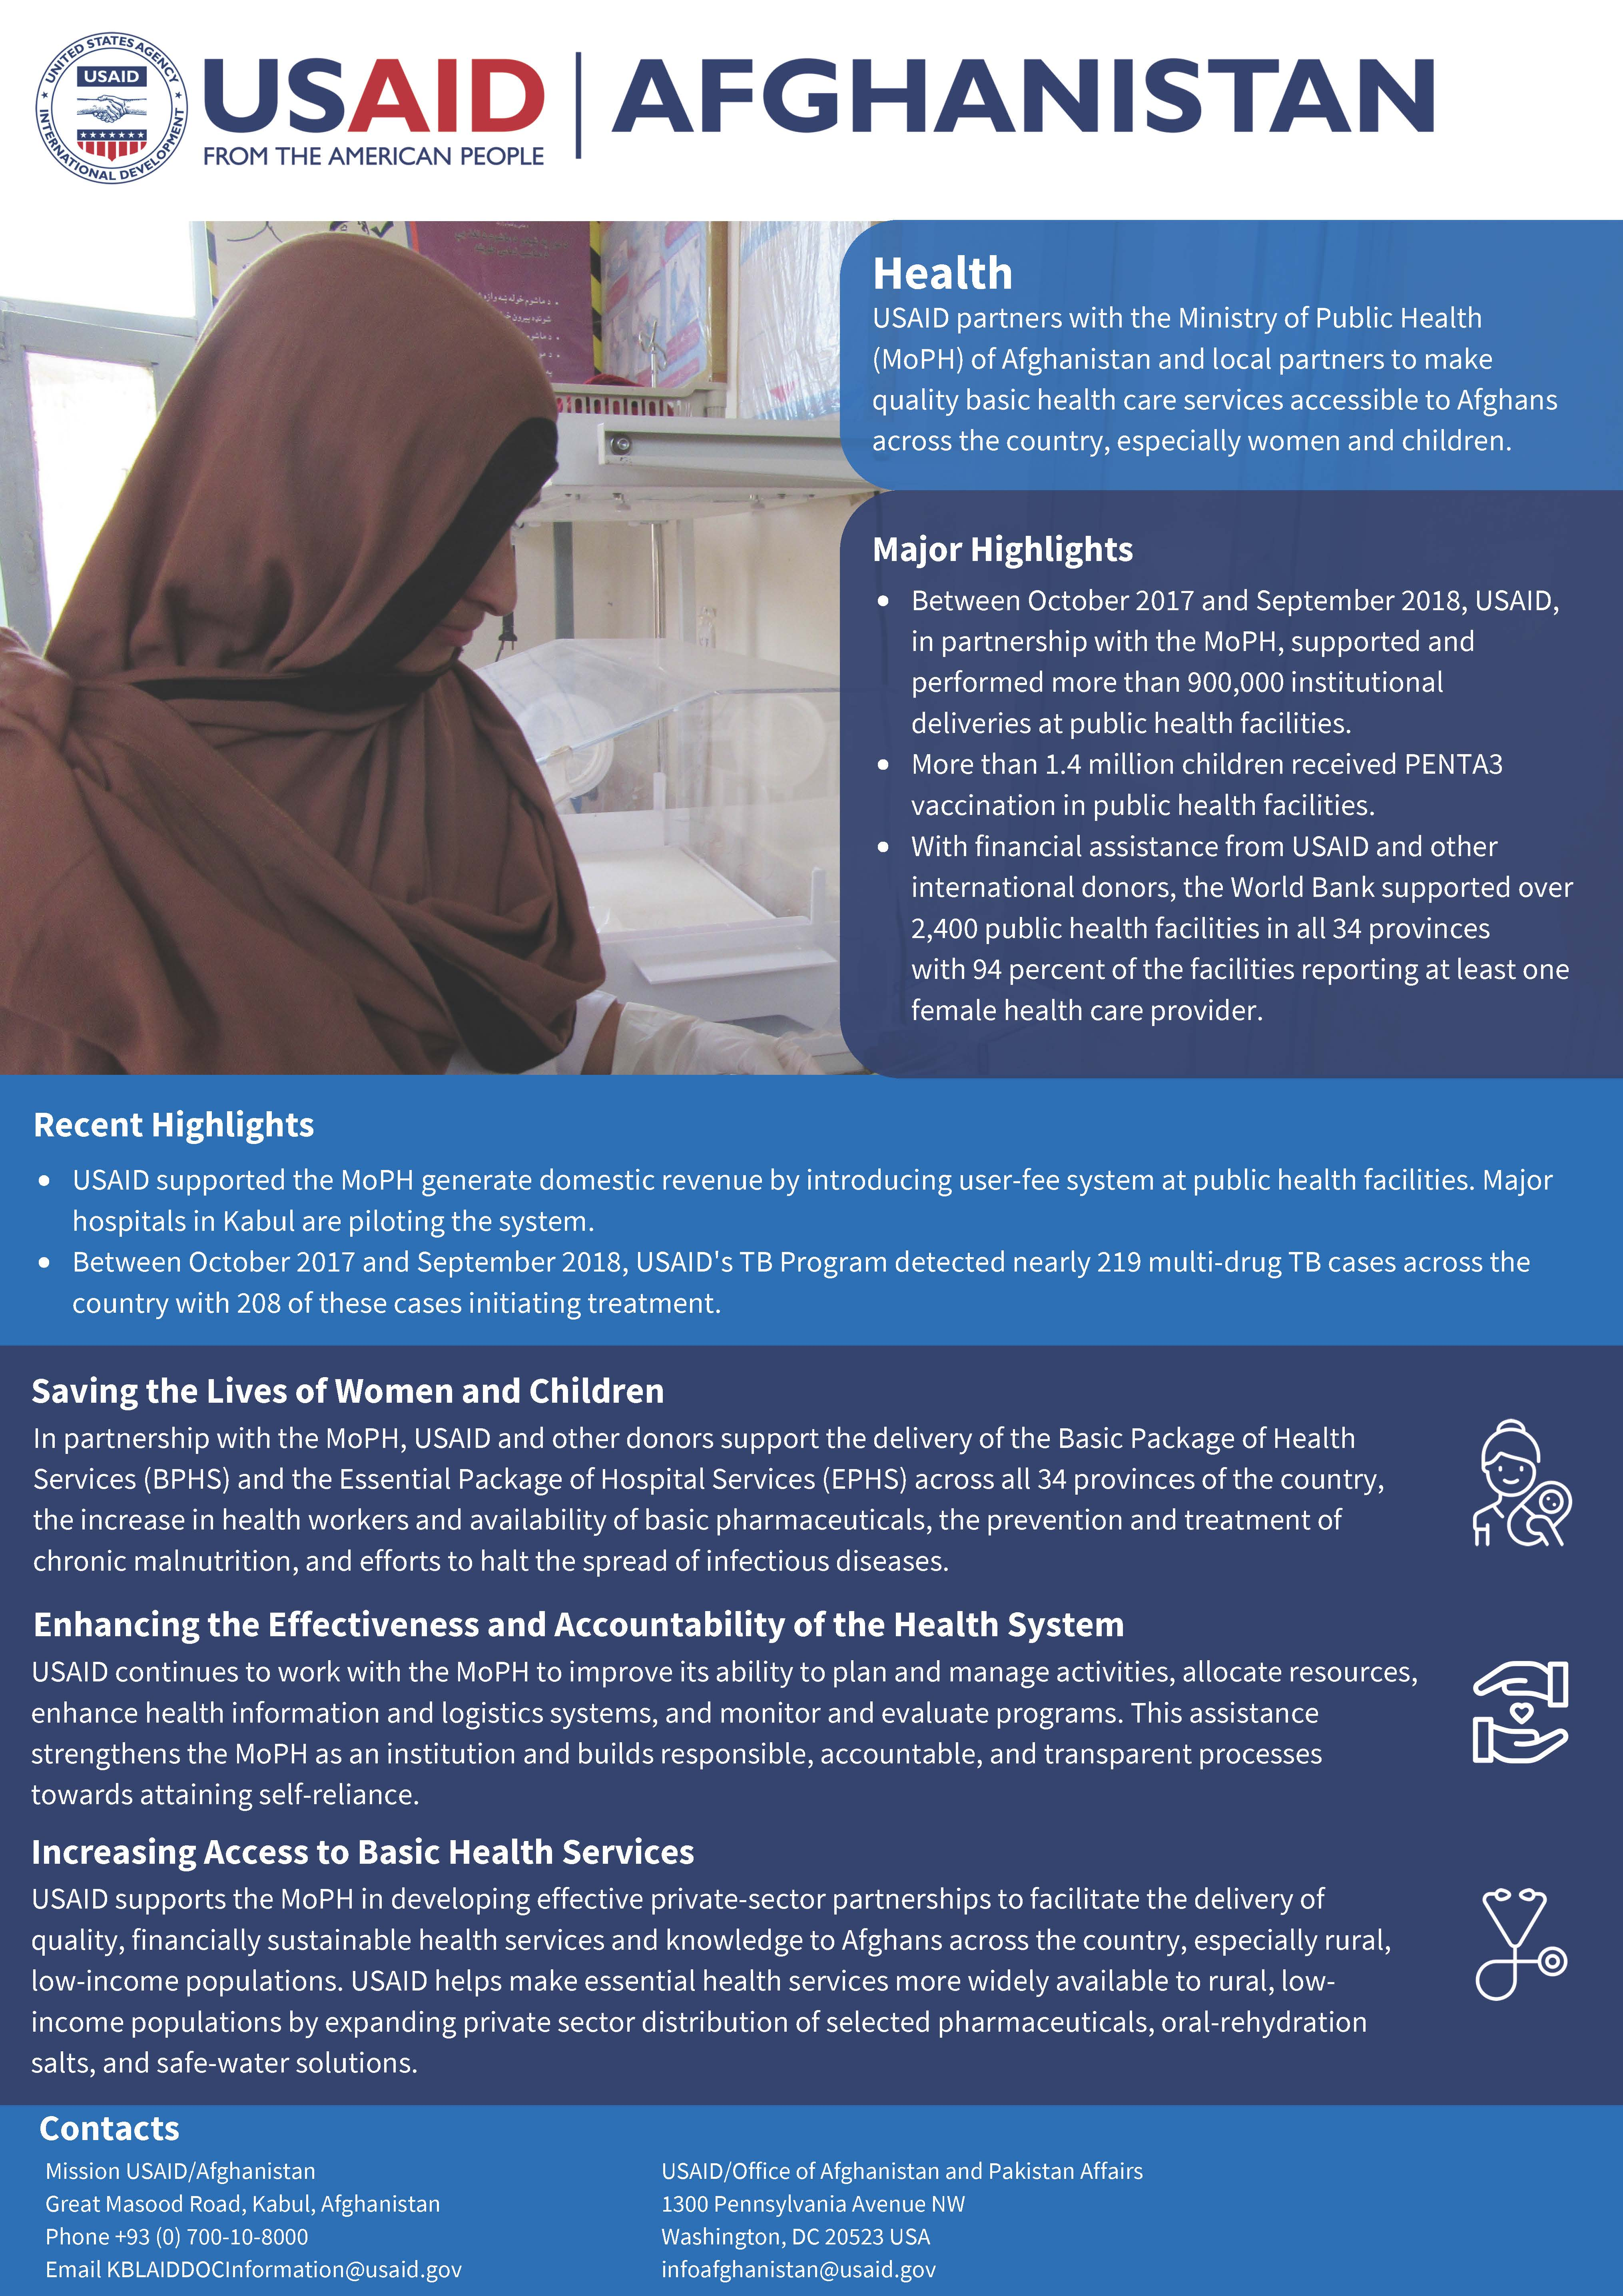 USAID Afghanistan Health Fact Sheet